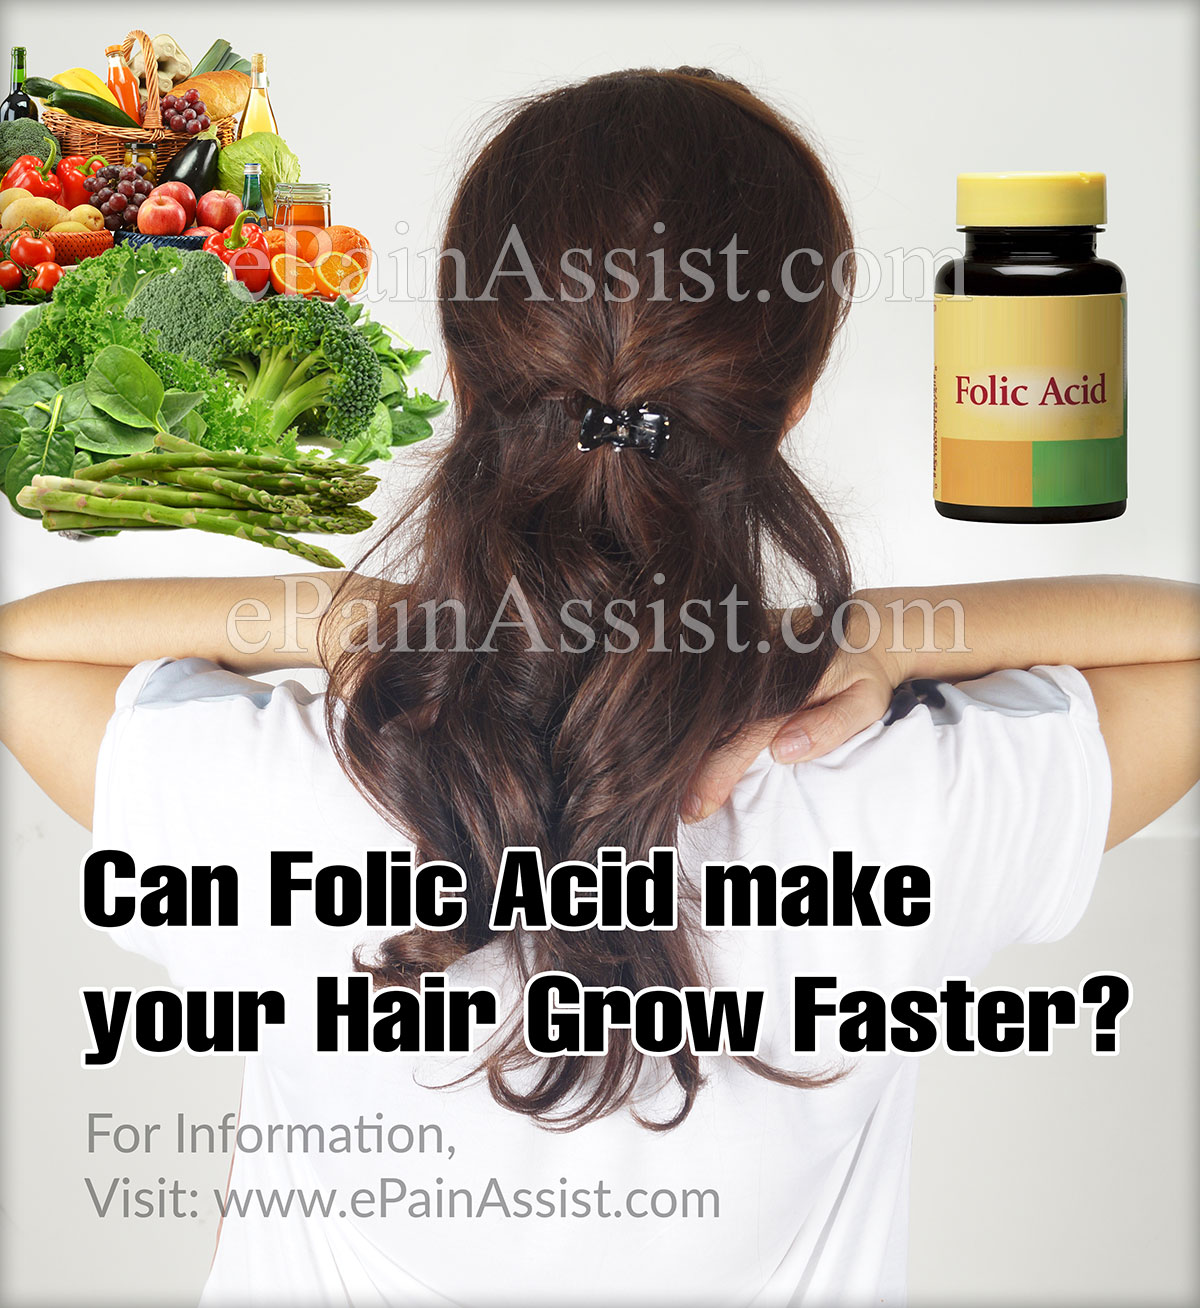 Can Folic Acid make your Hair Grow Faster?